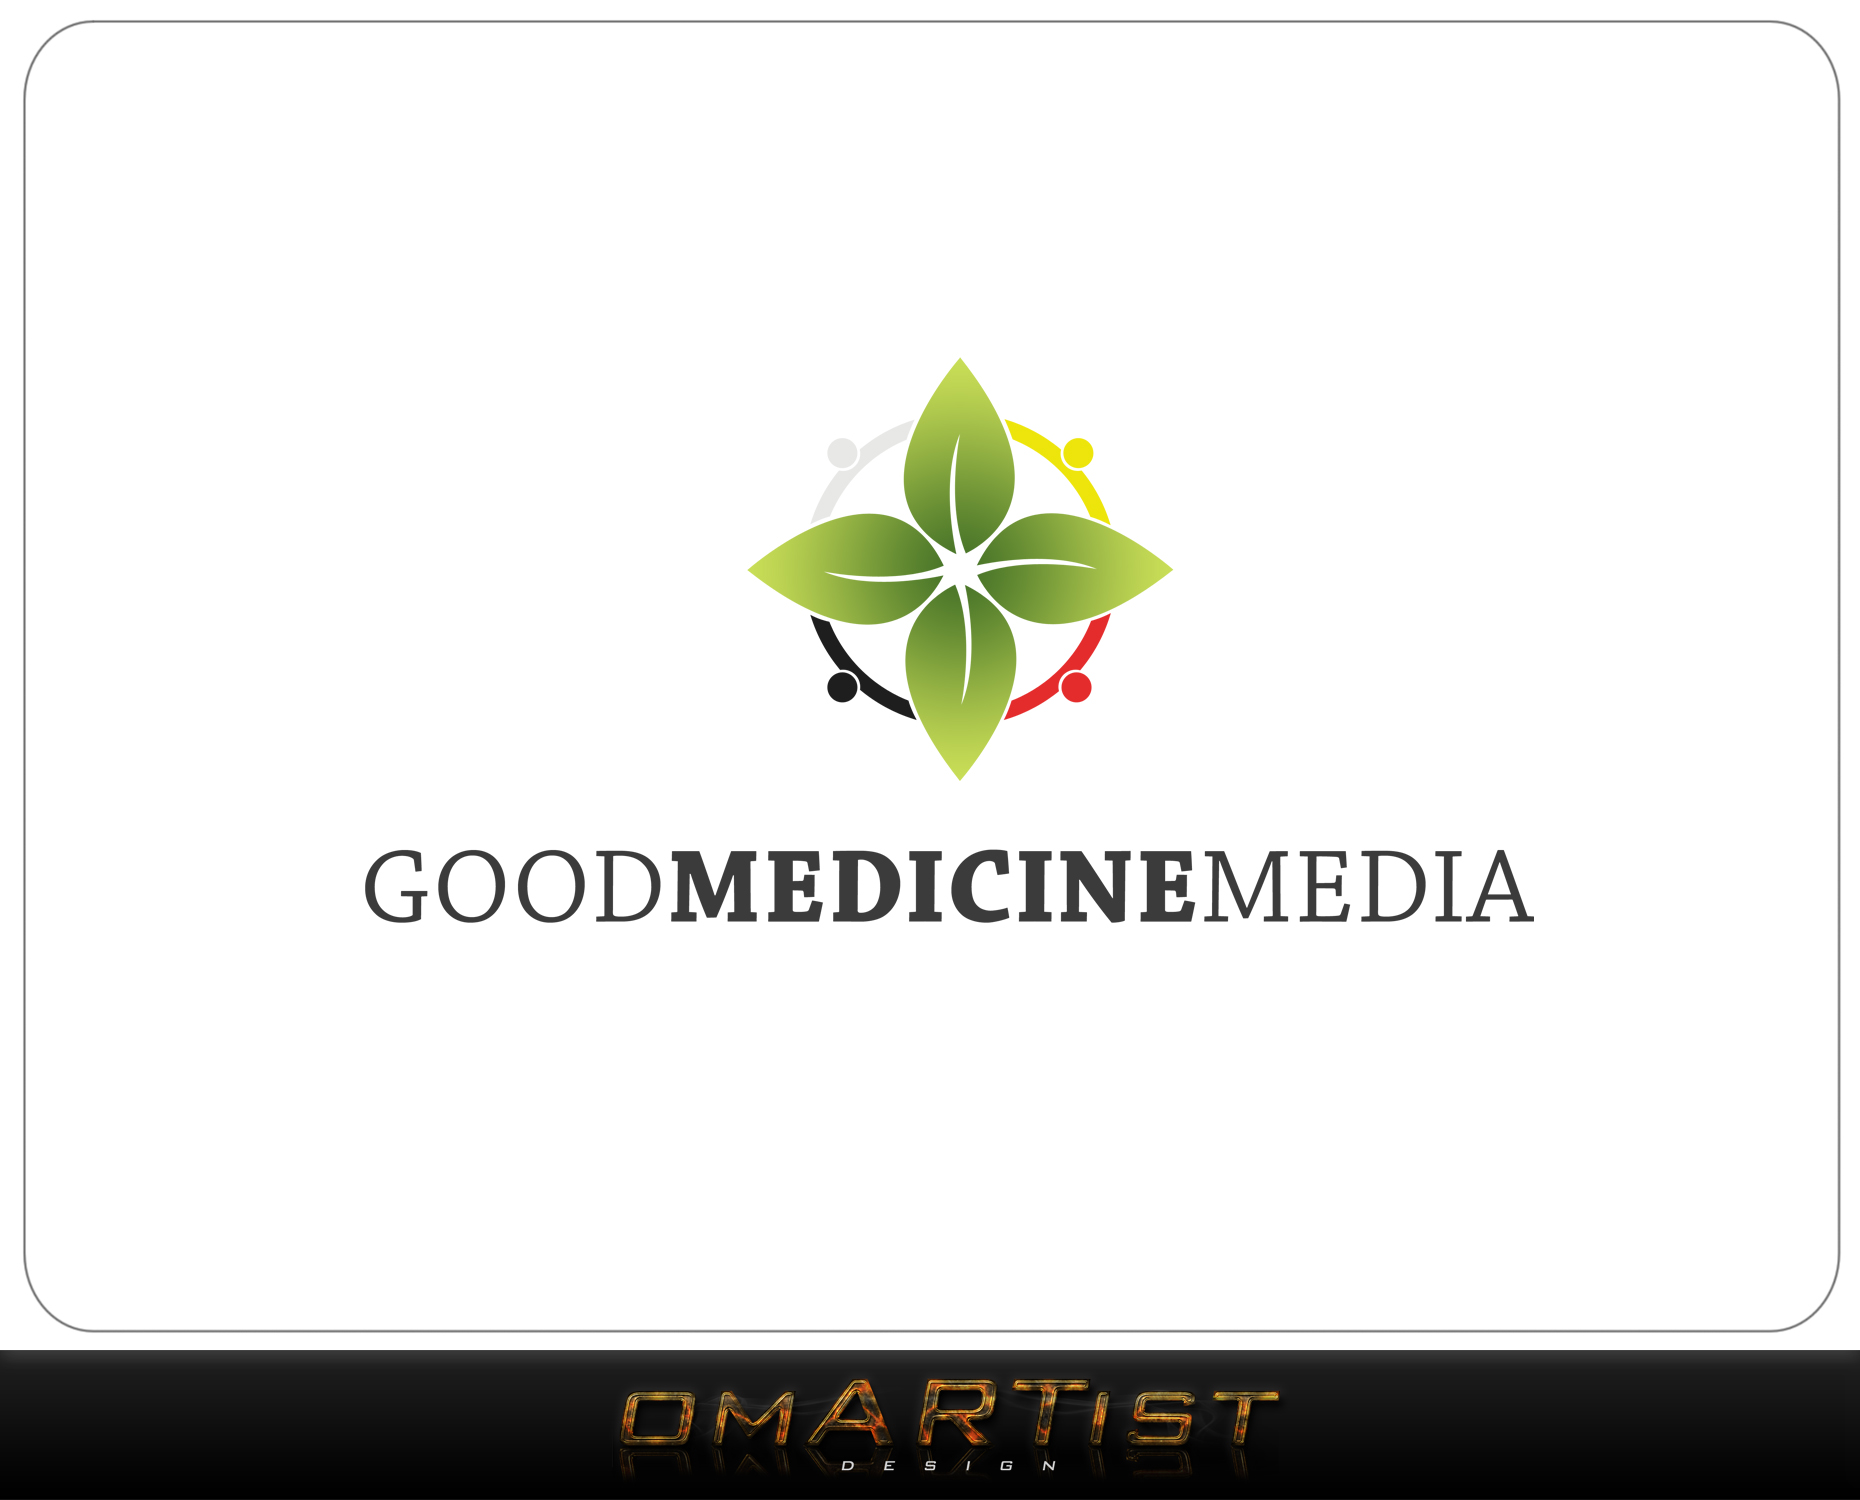 Logo Design by omARTist - Entry No. 108 in the Logo Design Contest Good Medicine Media Logo Design.